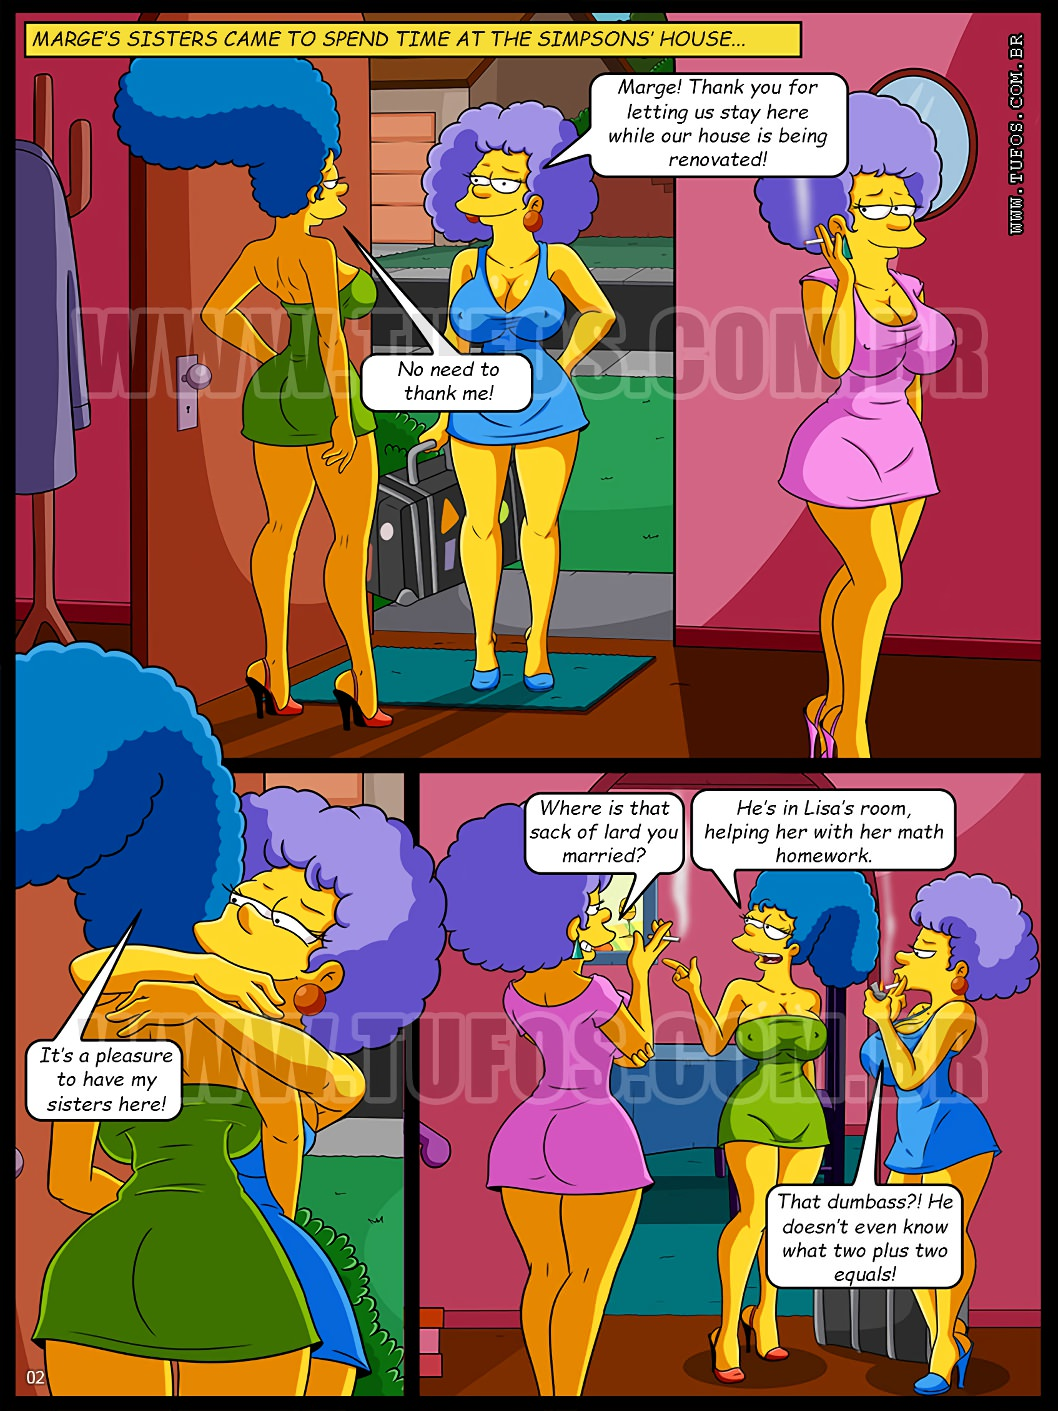 3D Porno Simpson in the bath with the aunts - simpsons online at world-hentai